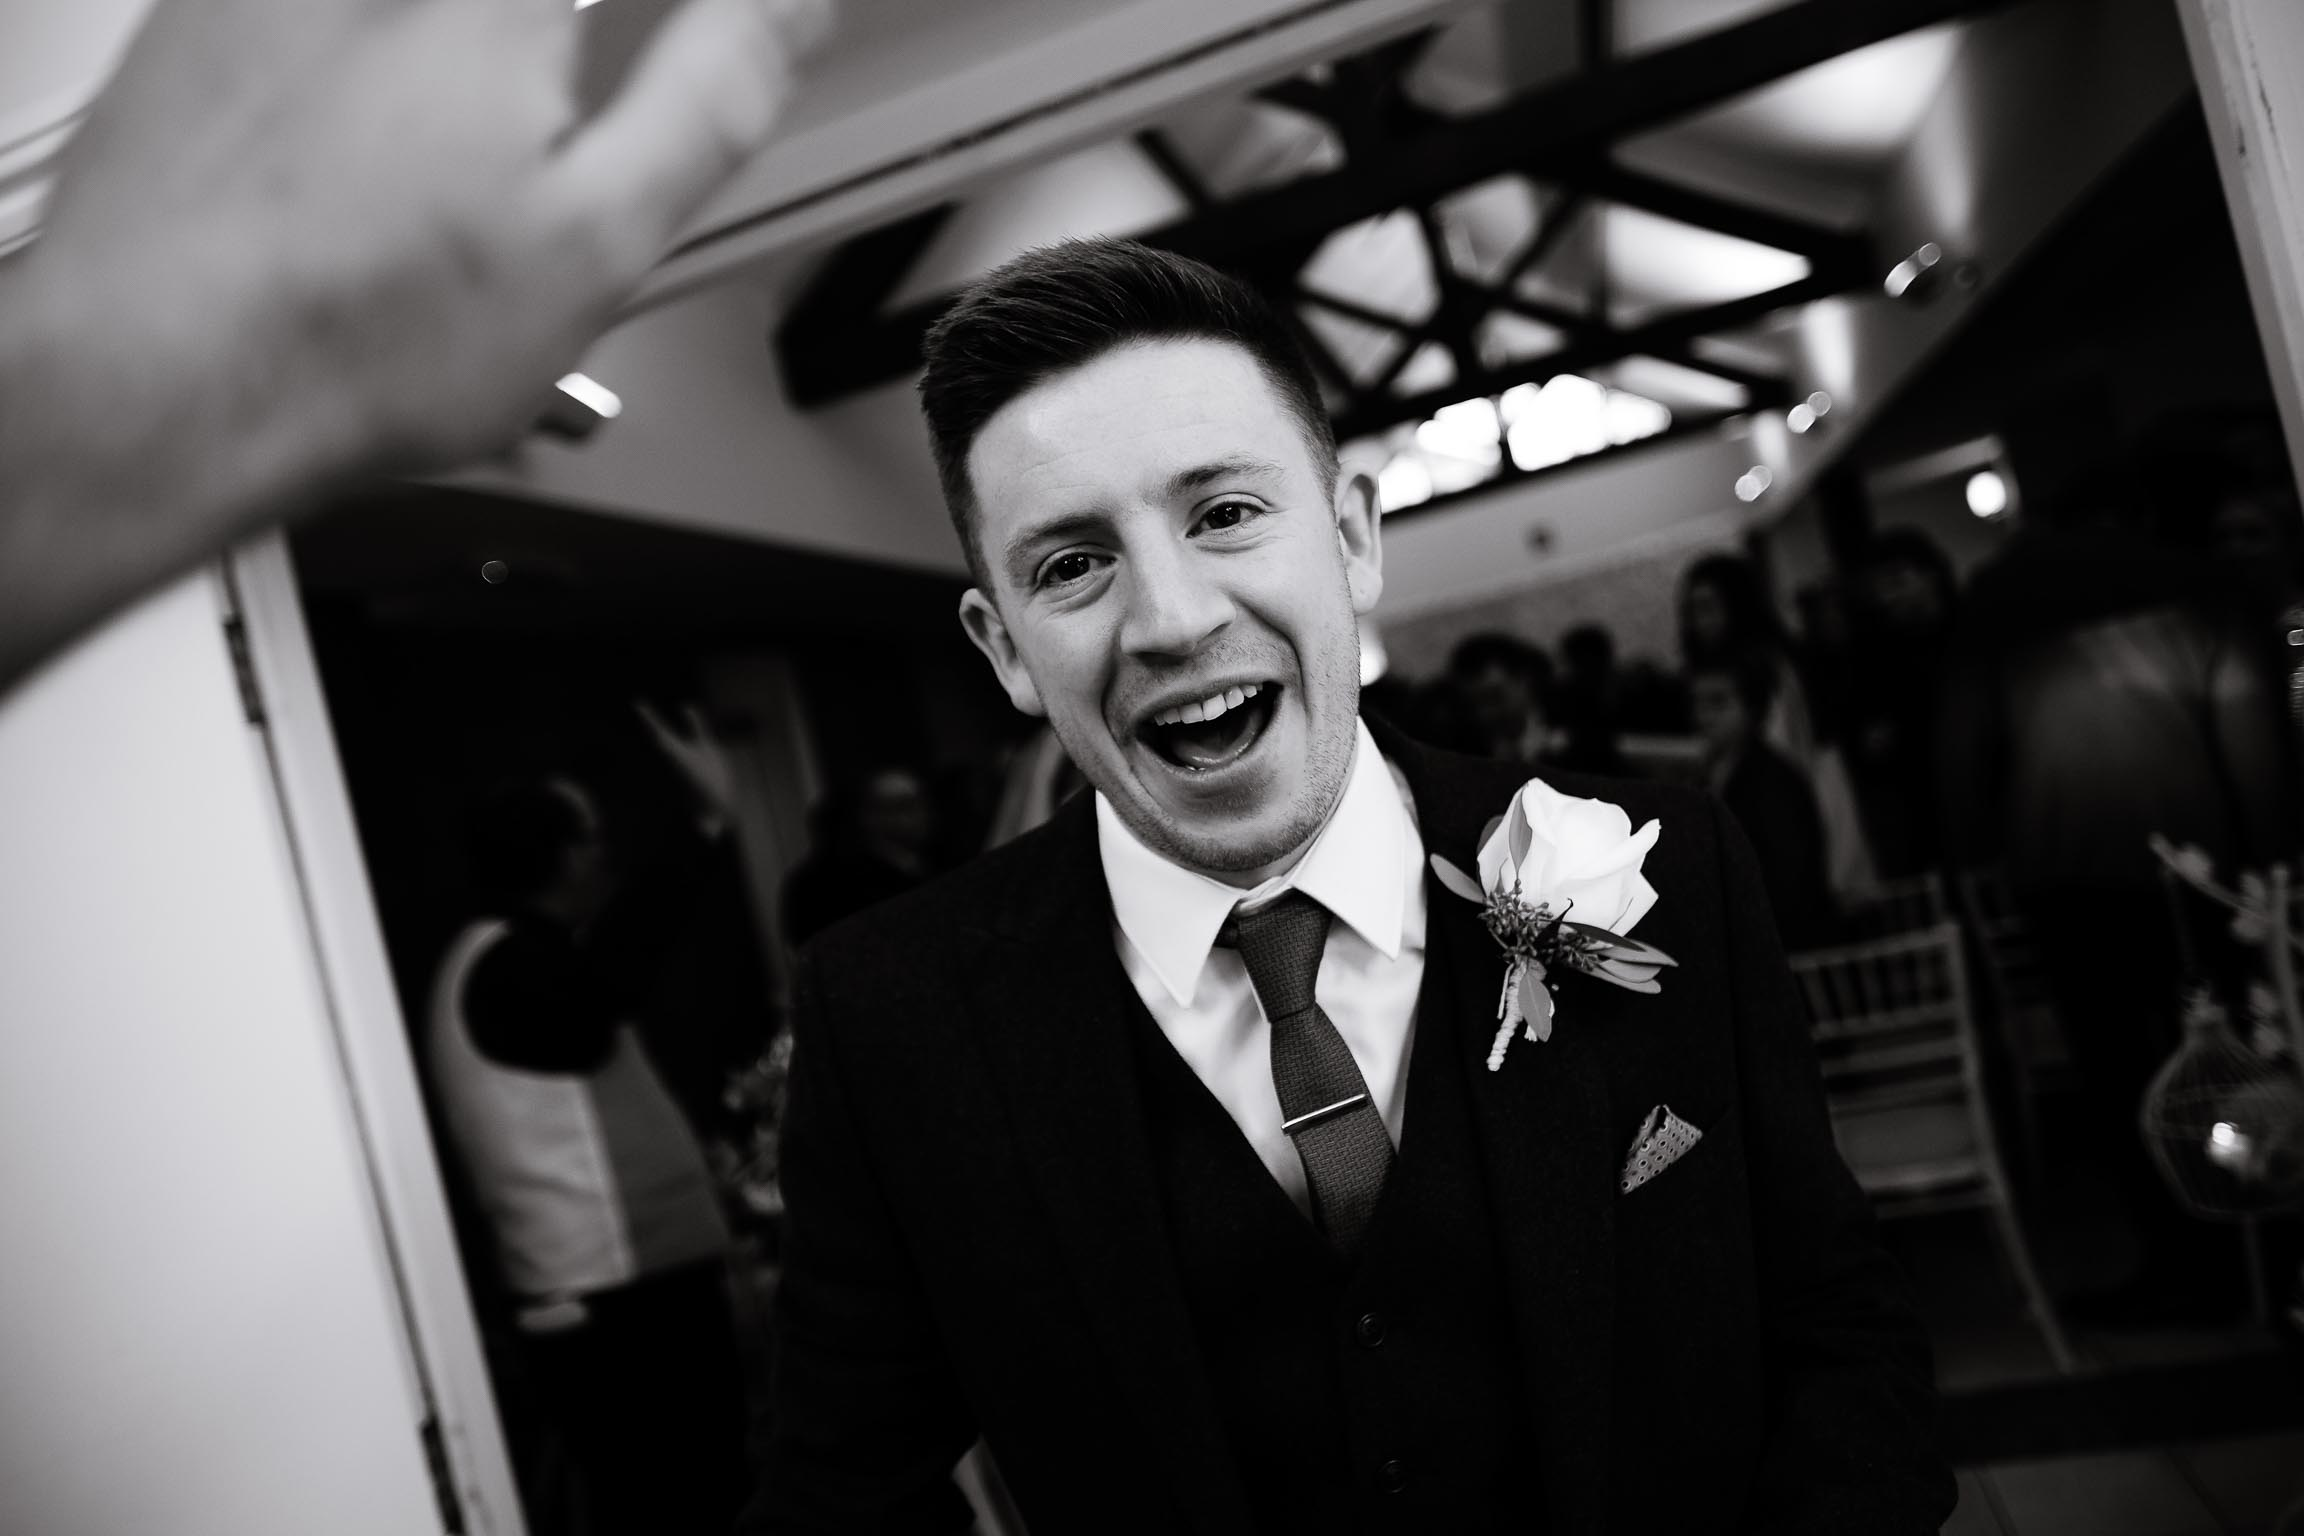 Stirk house clitheroe lancashire wedding photographer covering a documentary photography style  (45 of 85).jpg